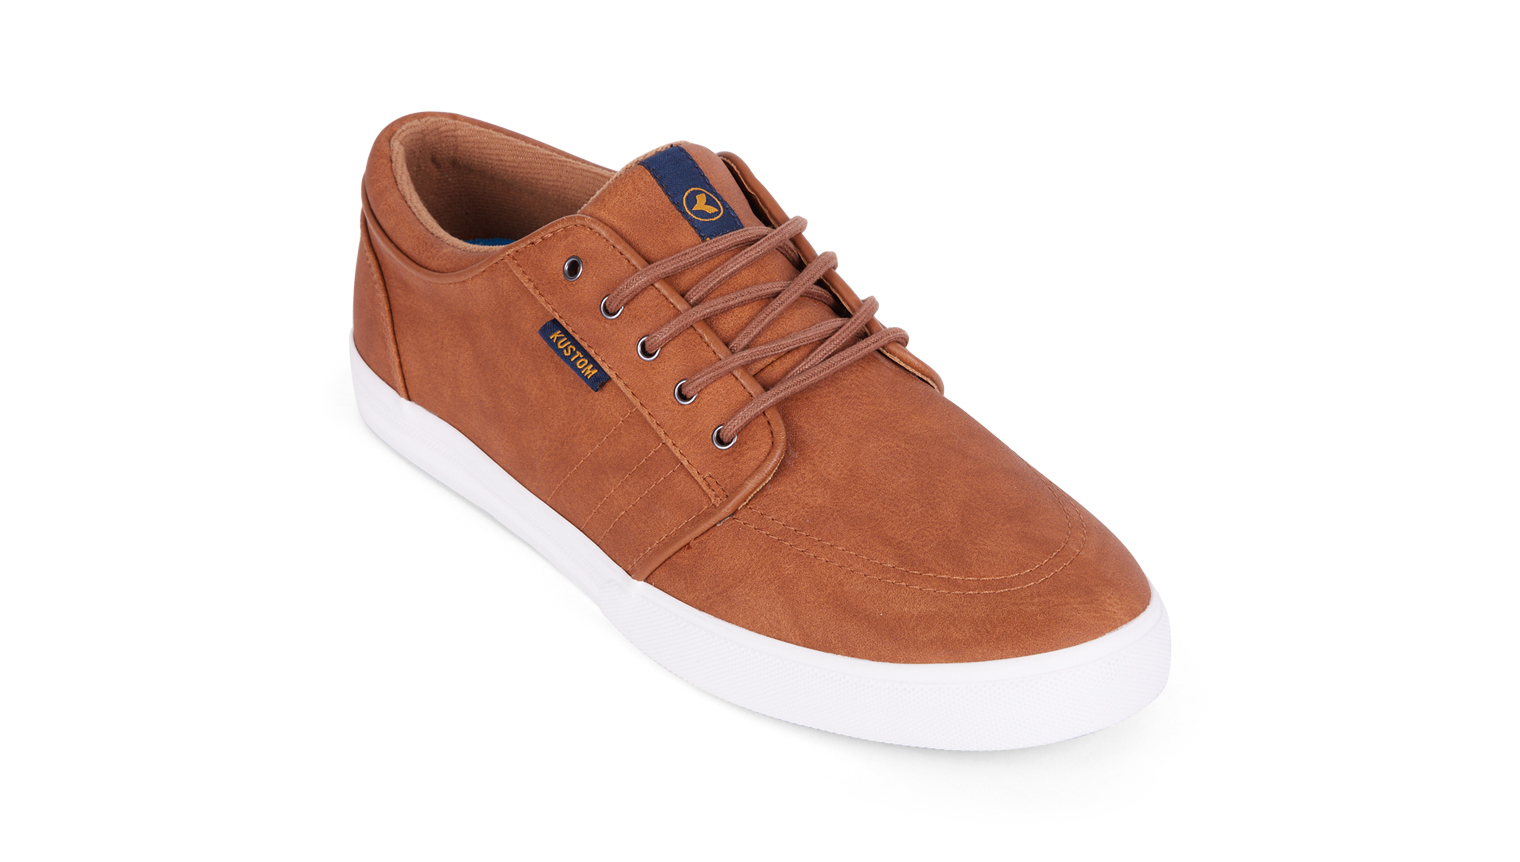 KUSTOM SHOES REMARK SHOE / BROWN